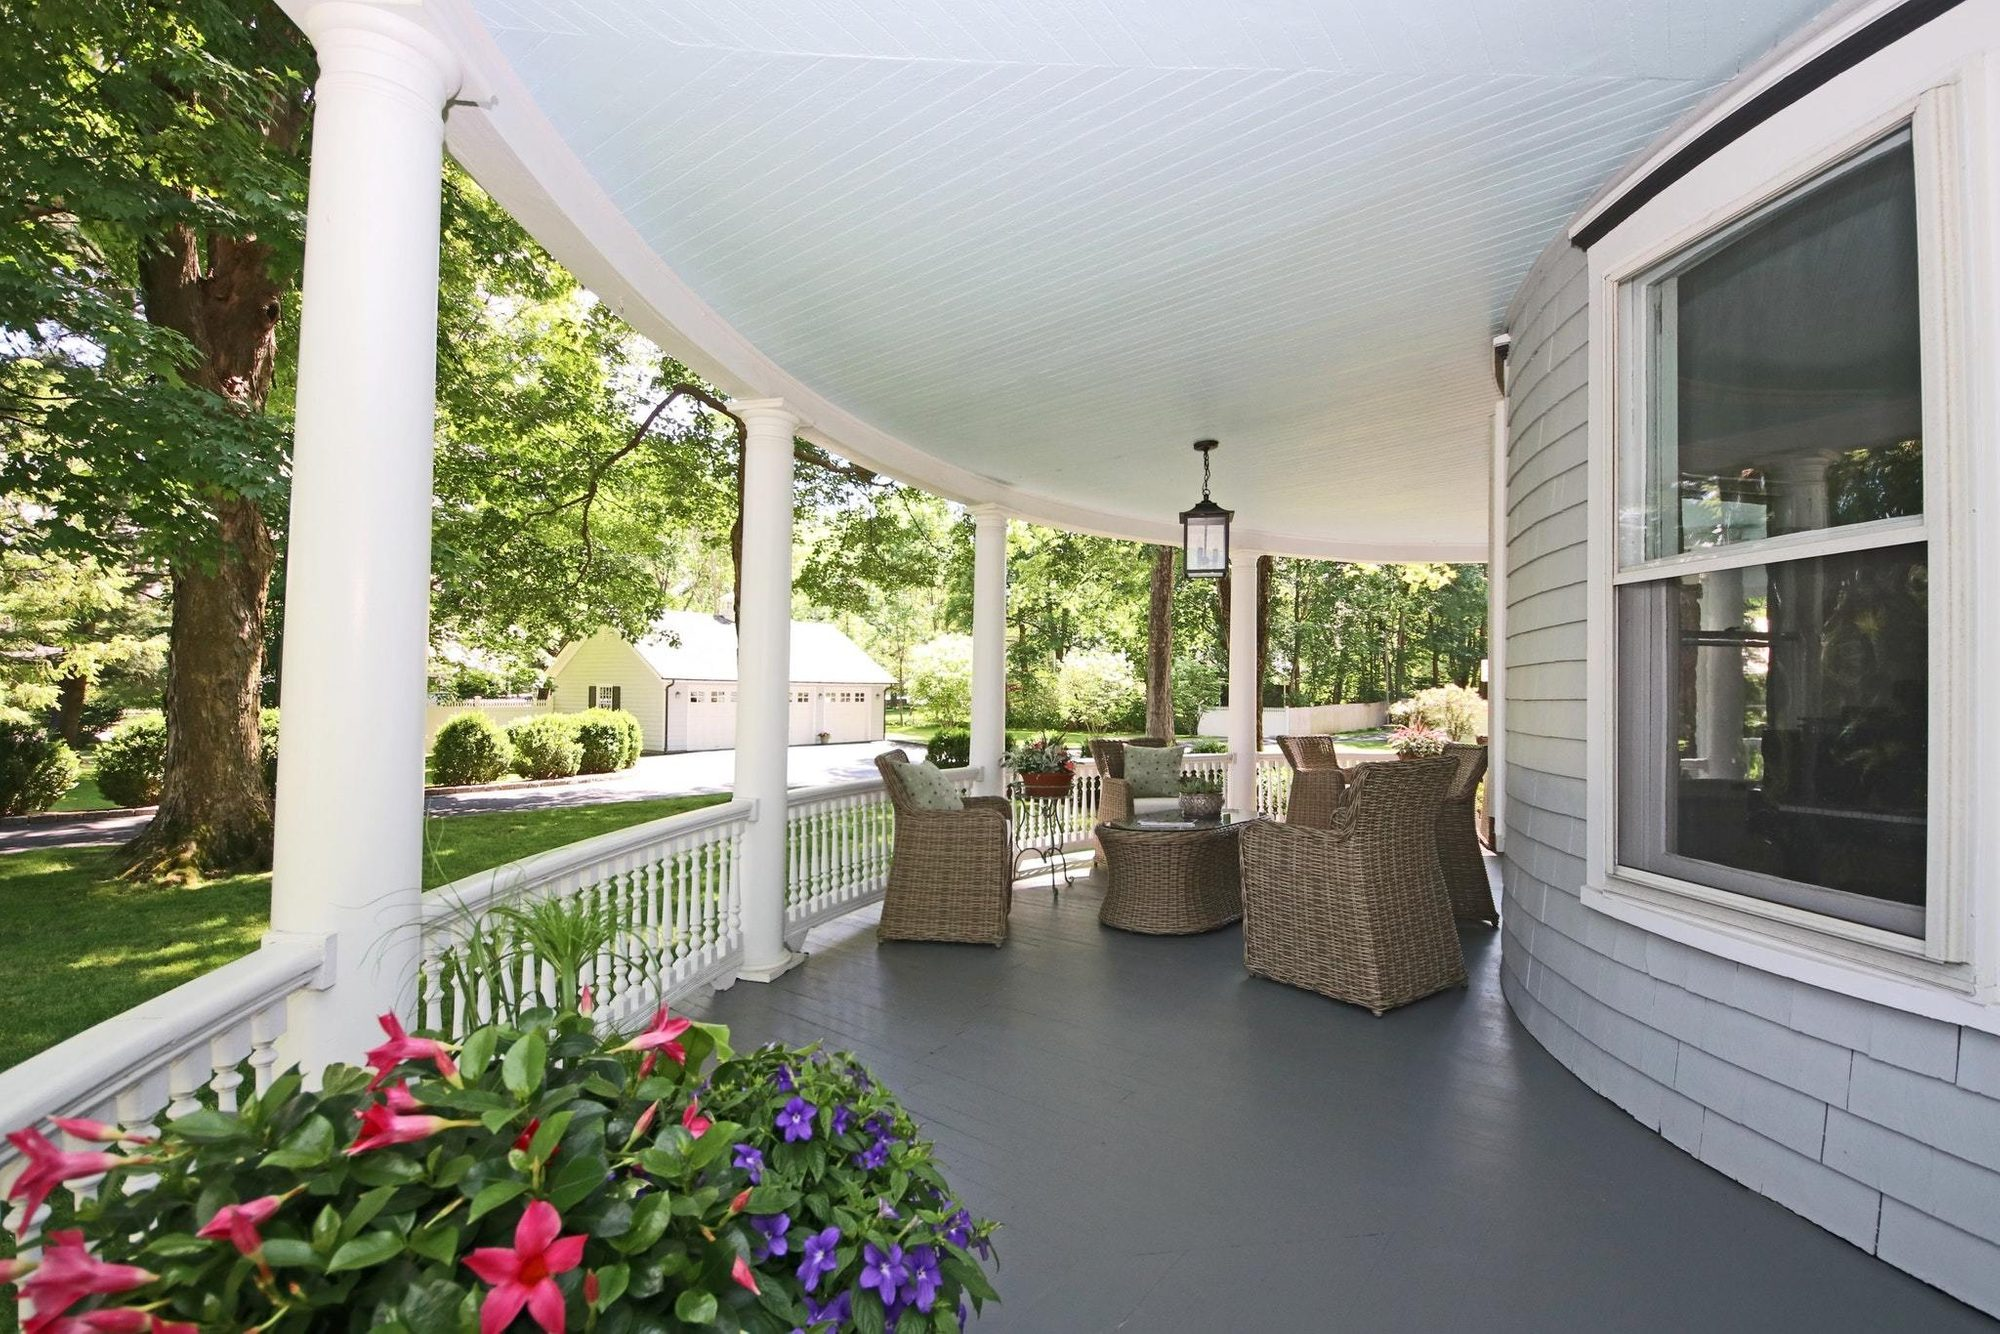 Covered wrap around wood porch flooring painted solid gray.